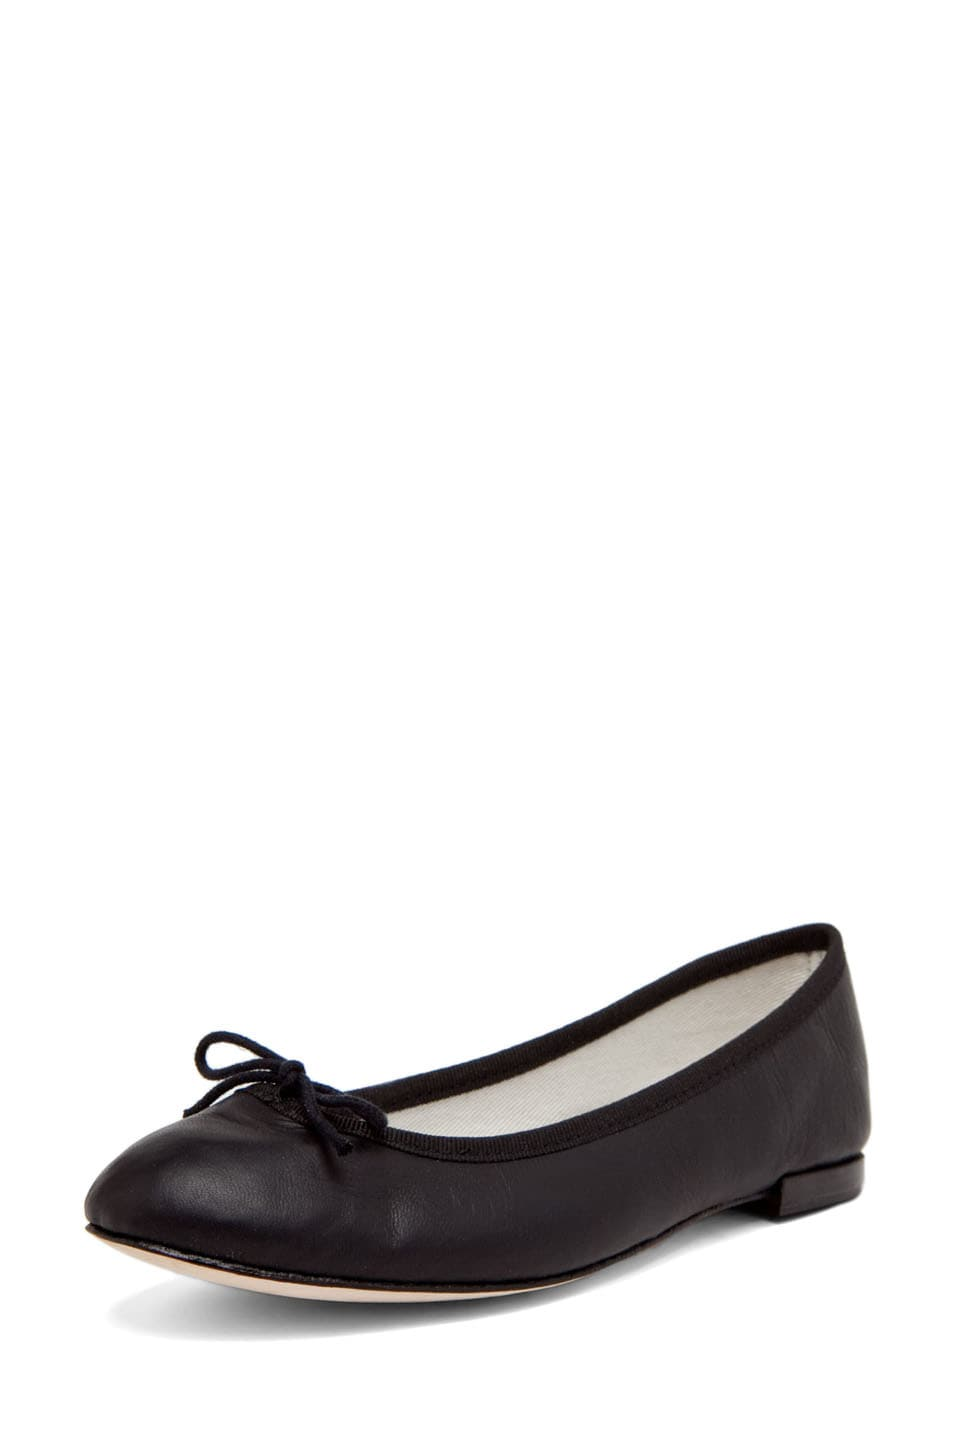 Image 2 of Repetto Calfskin Leather Flats in Black